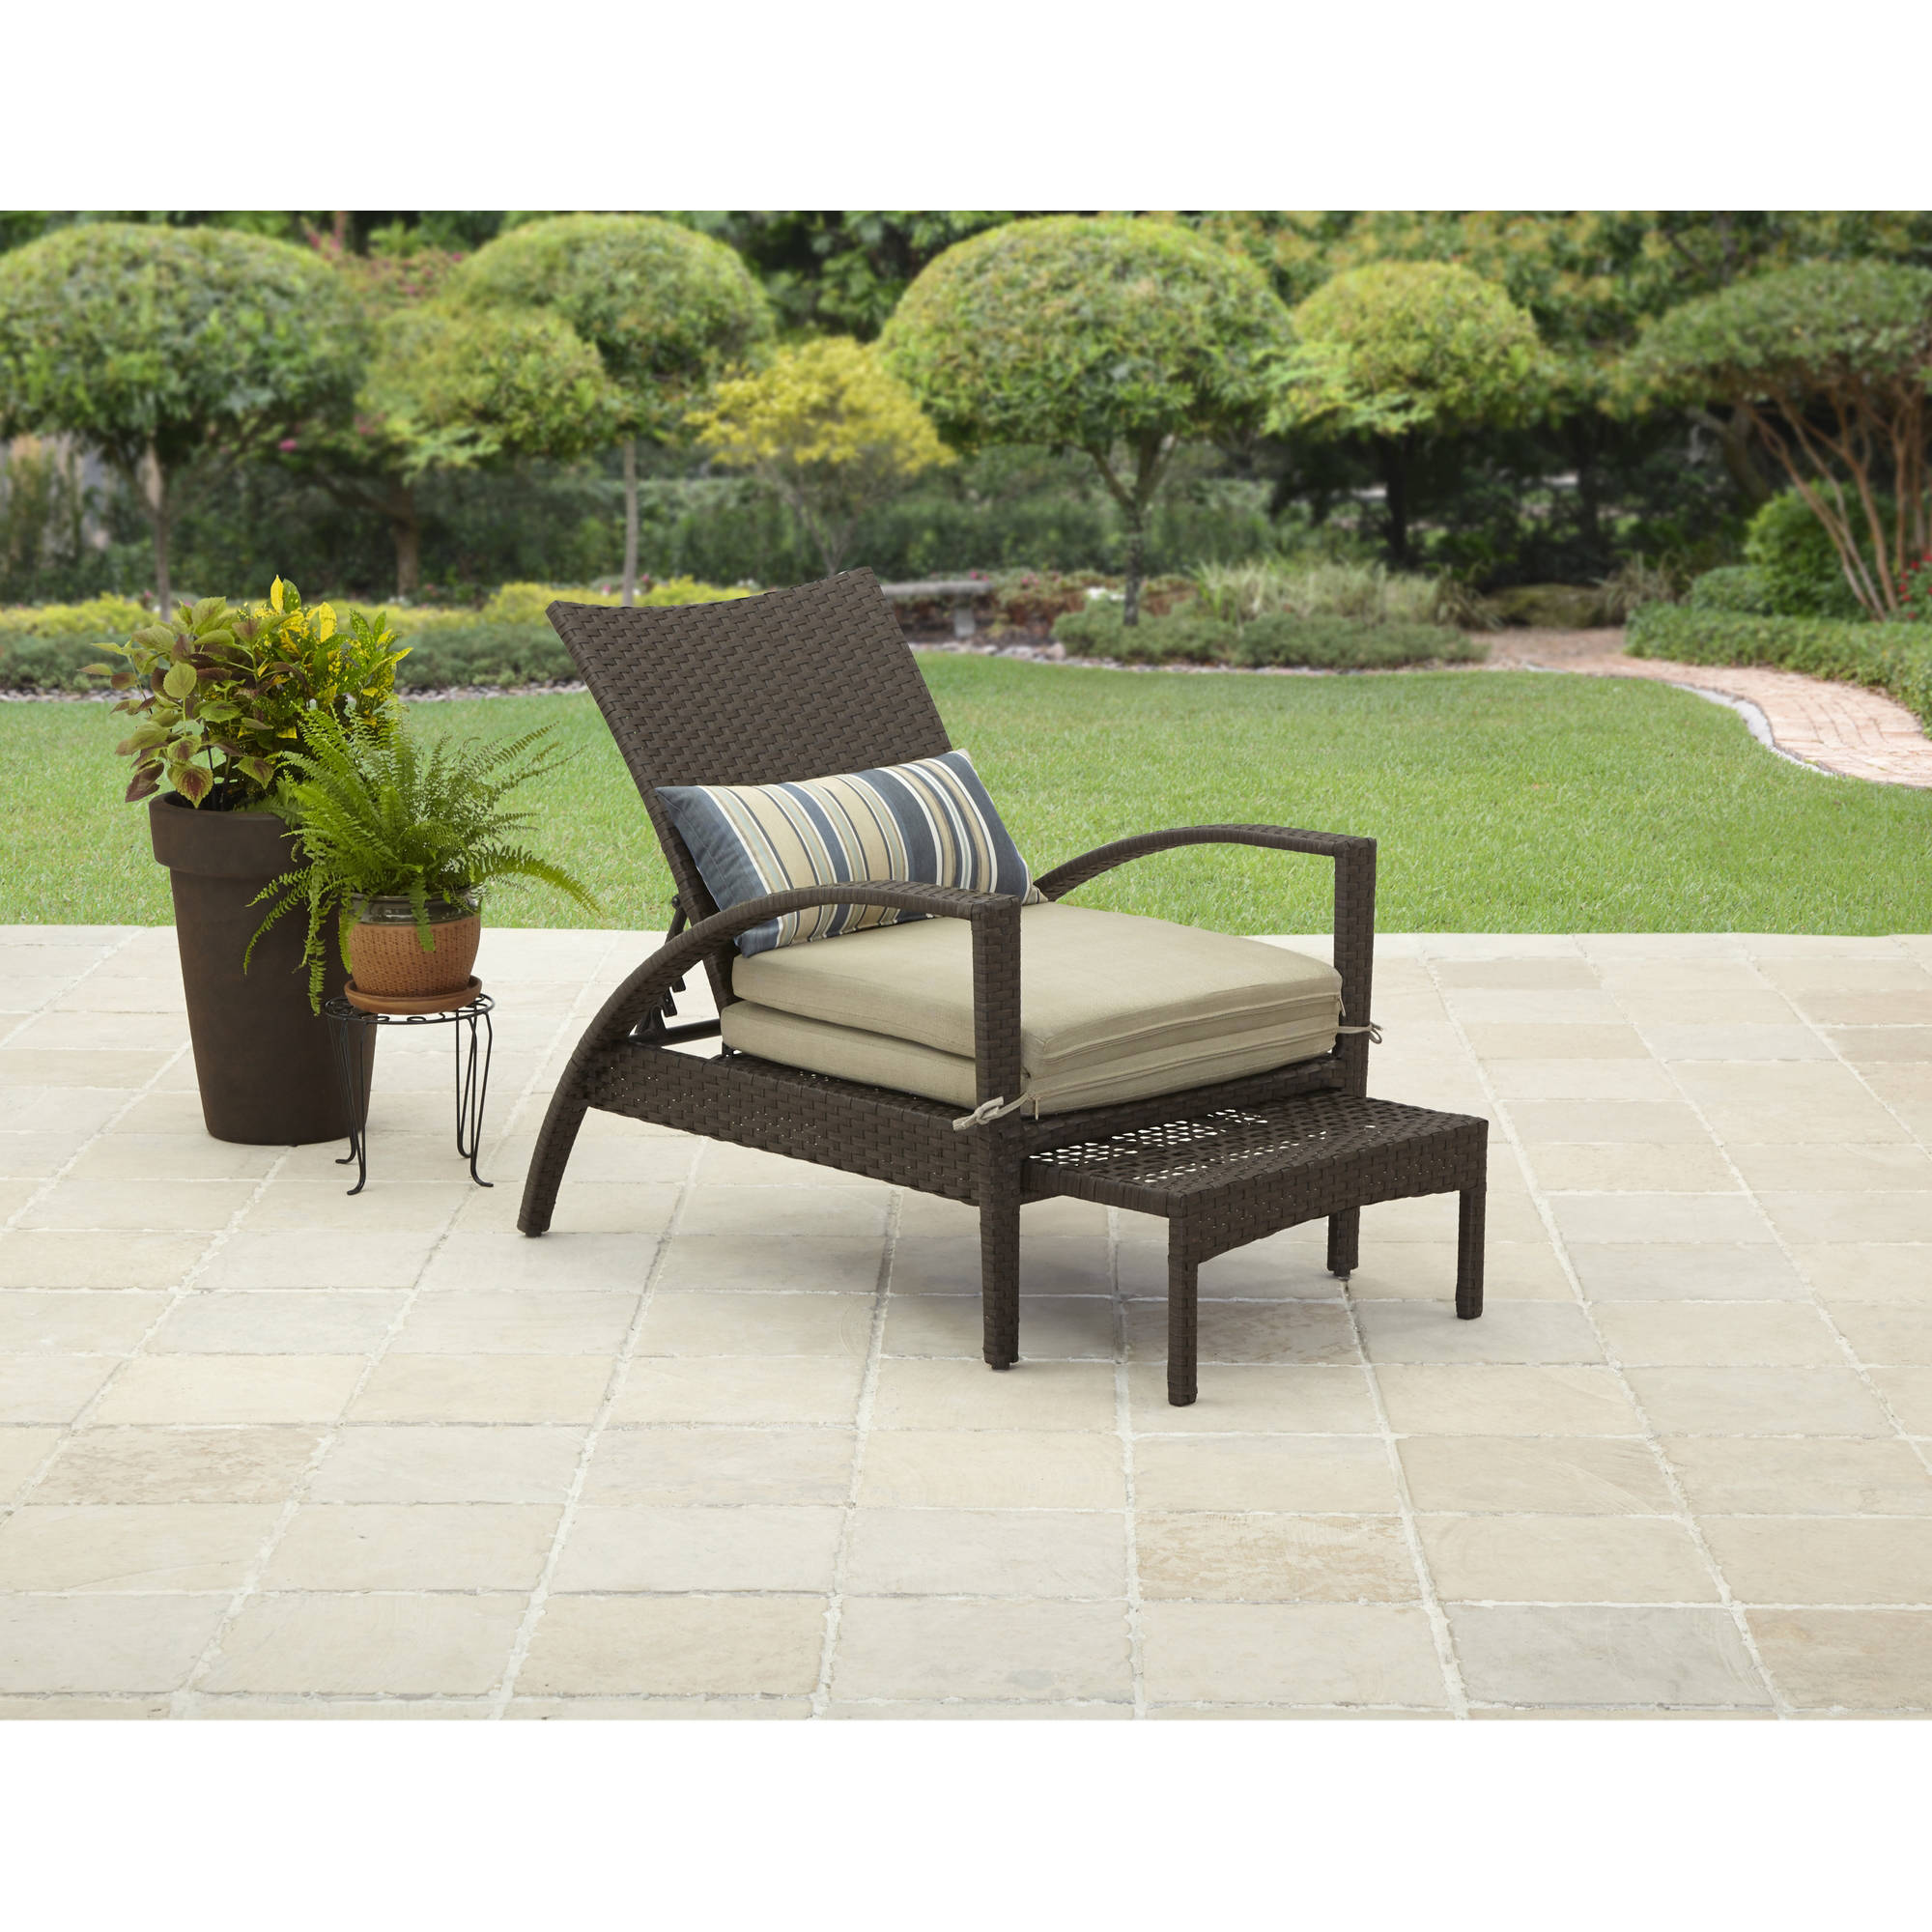 Awesome Patio Furniture   Walmart.com